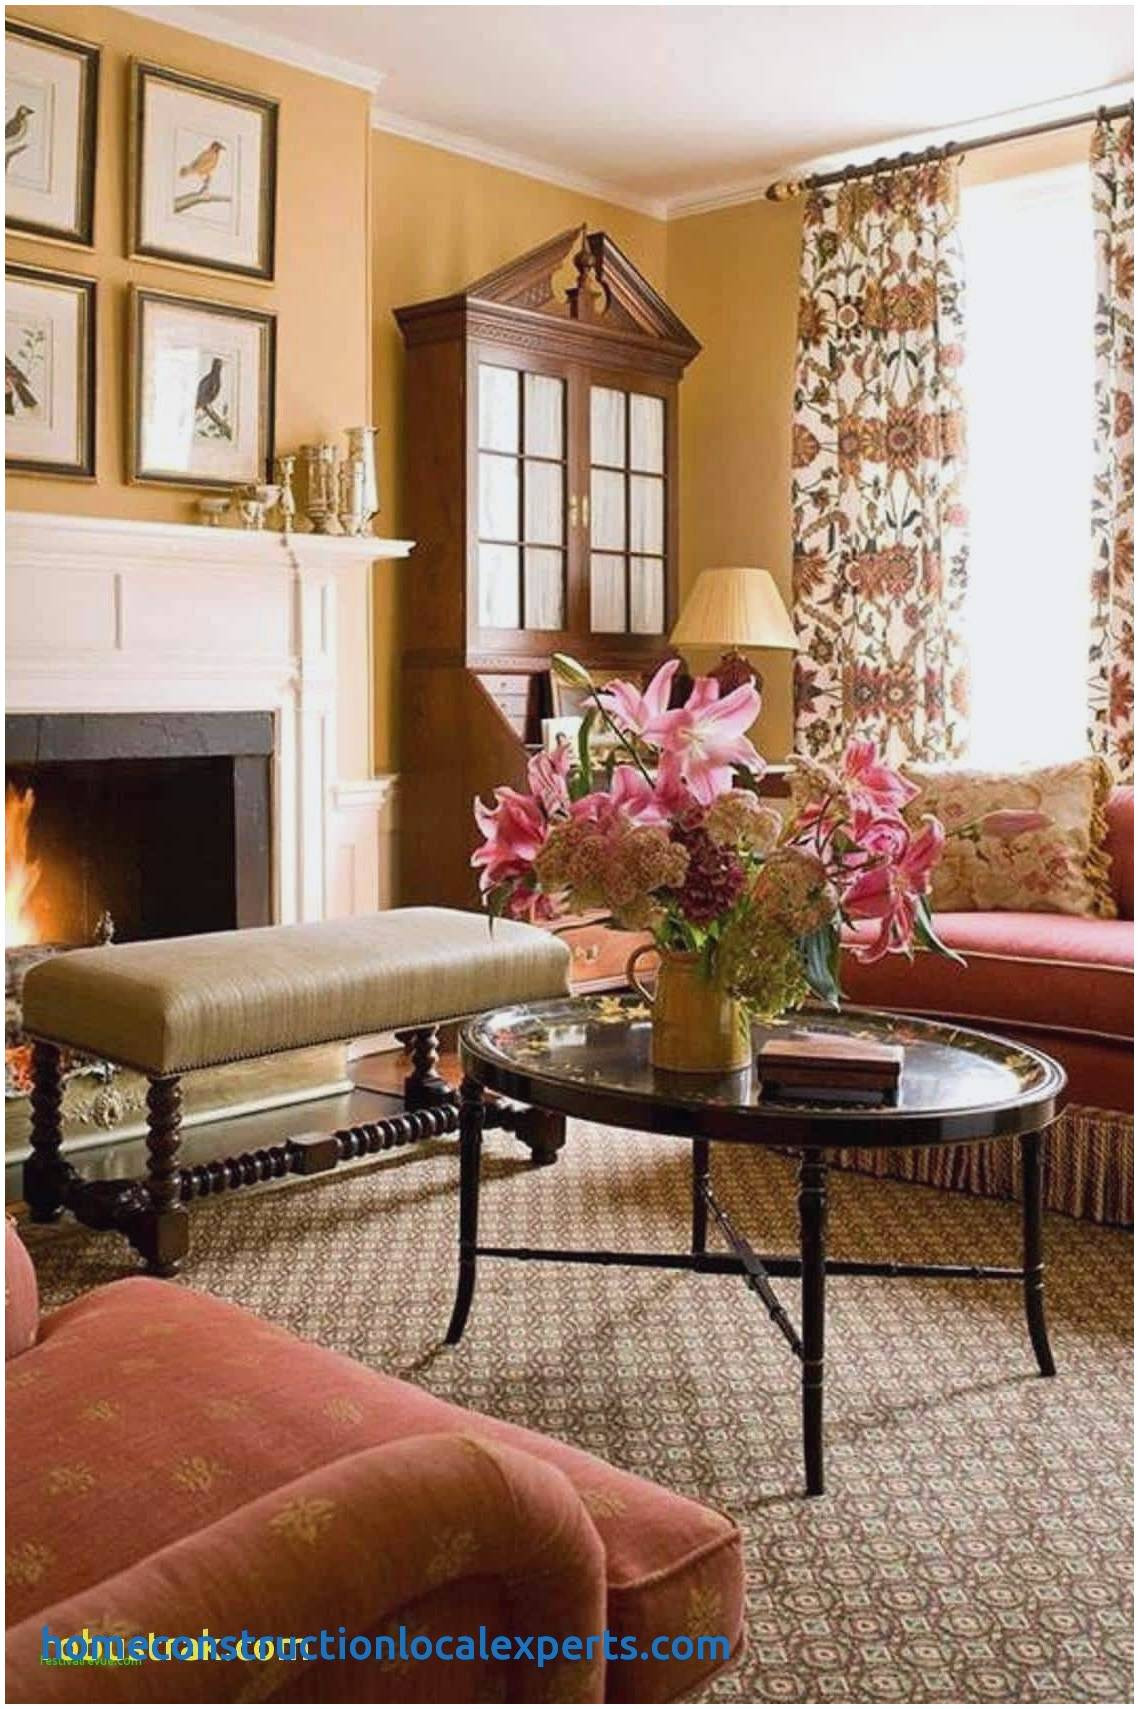 4 Foot Tall Floor Vases Of Beautiful 35 Fresh Small House Interior Design Image for Excellent Throughout Beautiful 35 Fresh Small House Interior Design Image for Excellent Tiny House Movement Nz